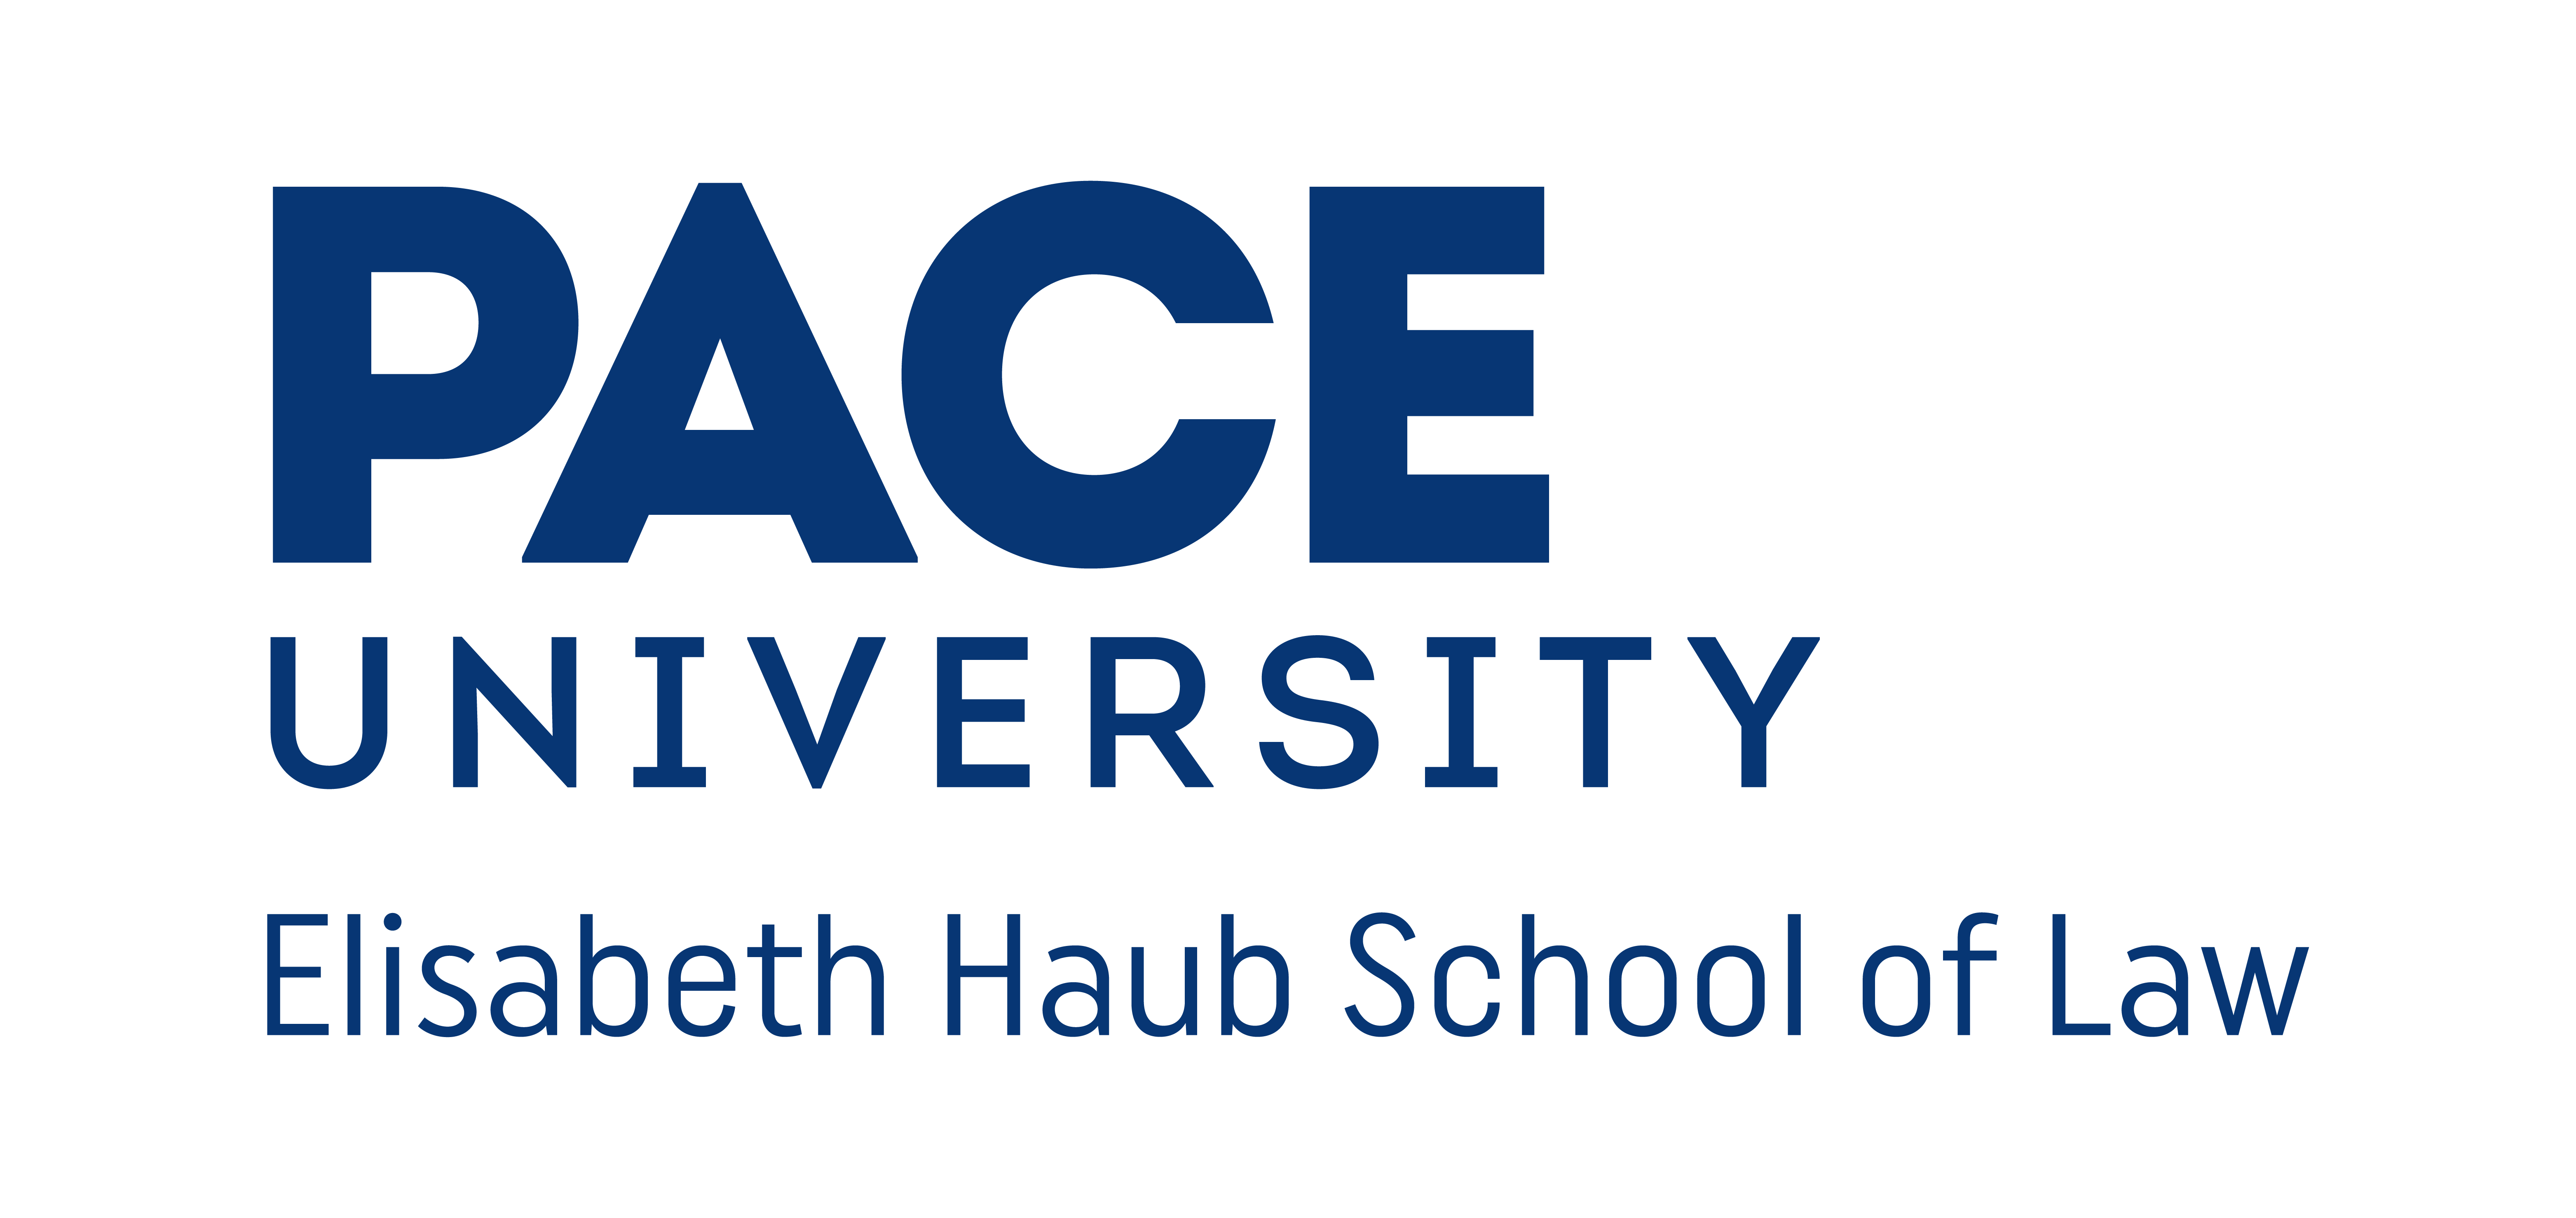 Elisabeth Haub School of Law Logo